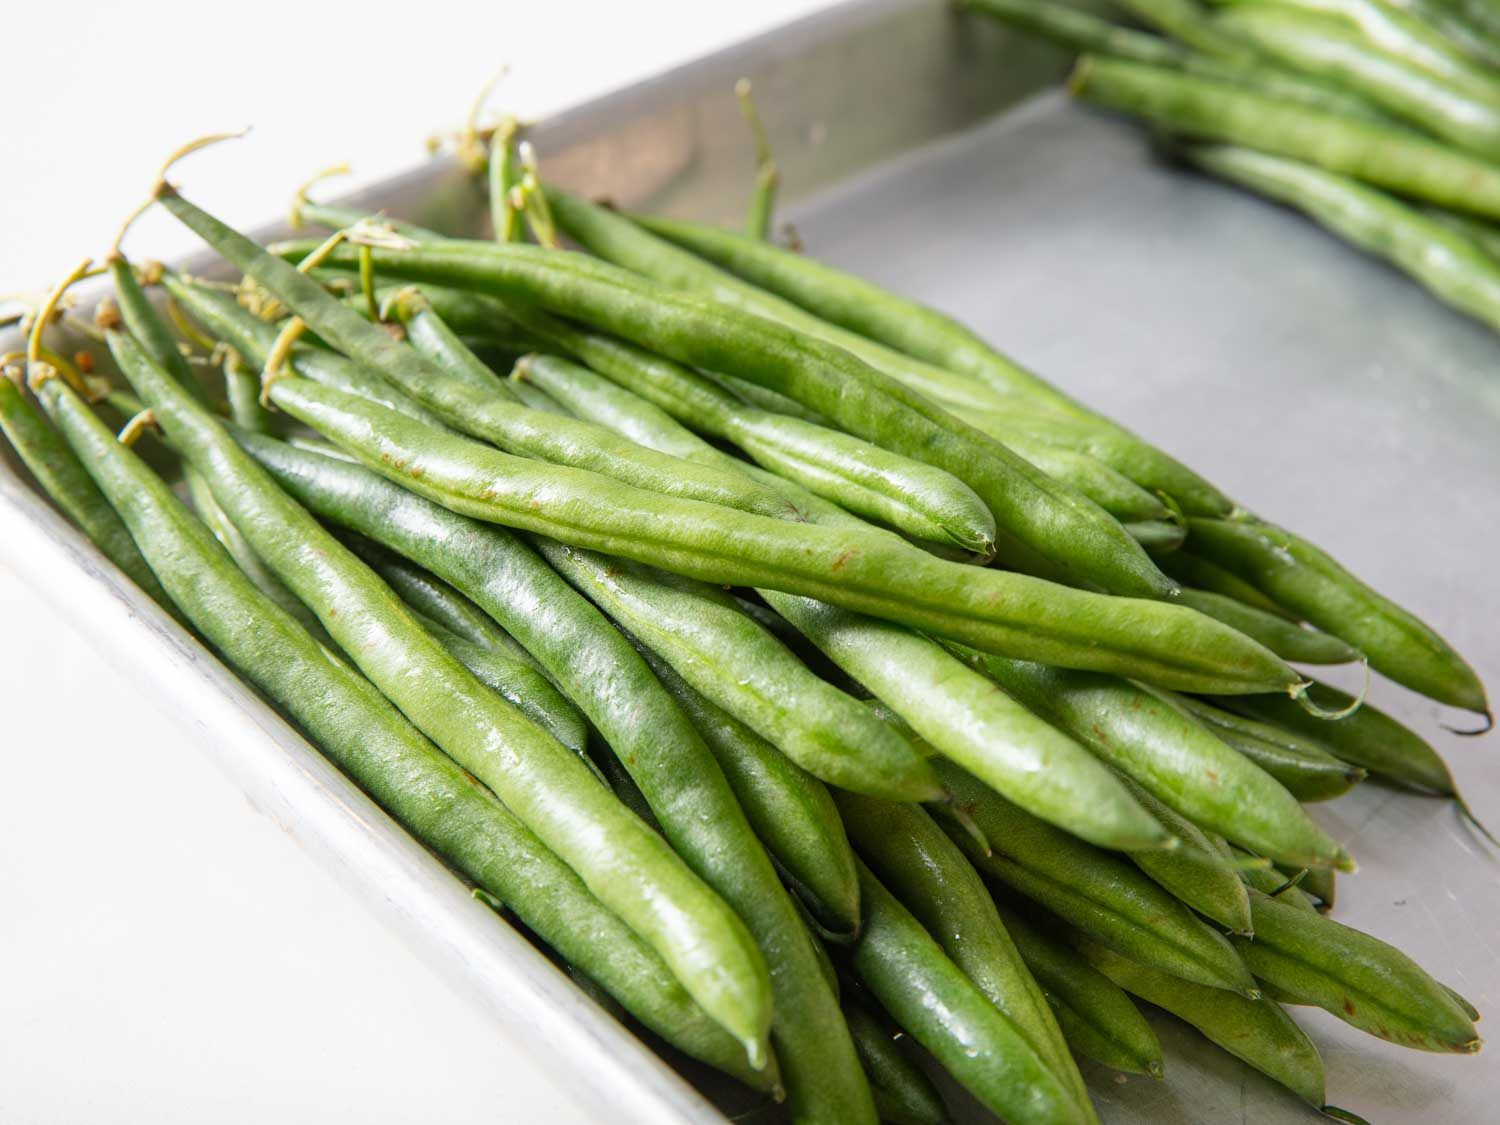 Closeup of whole raw green beans.